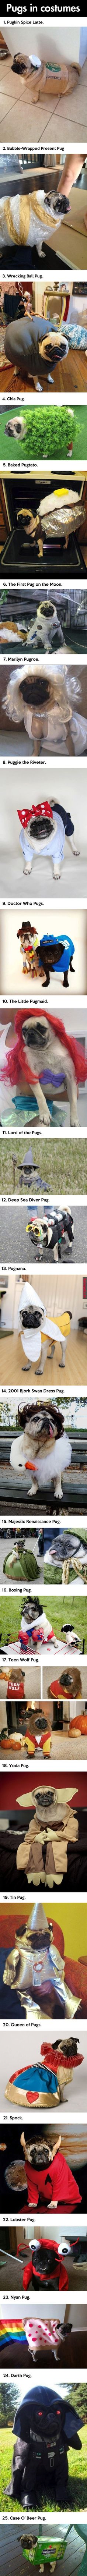 Pugs In Costumes!!! for more funny pictures visit wwww.funnypics.in